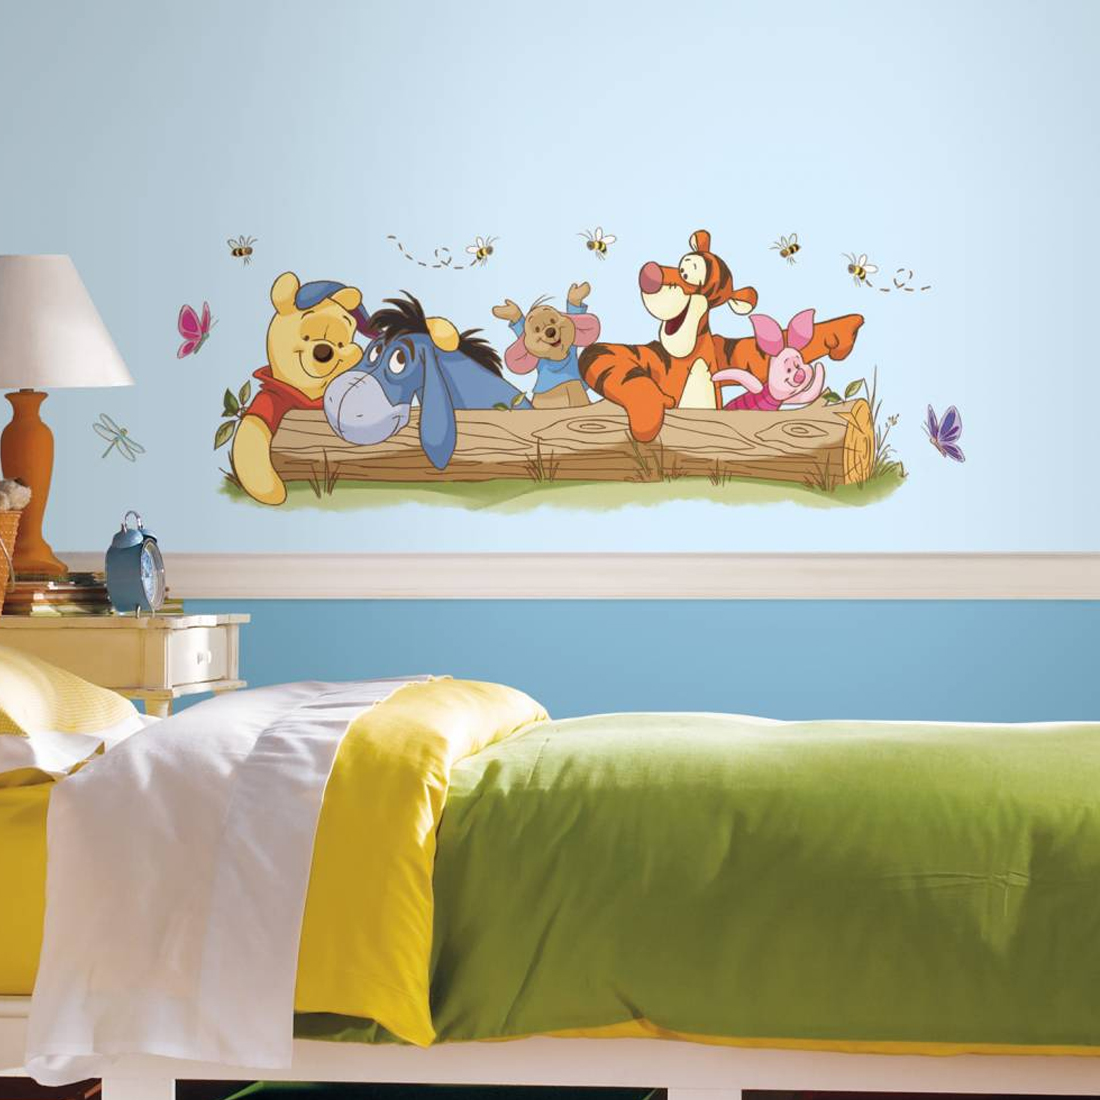 winnie de pooh muursticker groot bekijk alle muurstickers. Black Bedroom Furniture Sets. Home Design Ideas